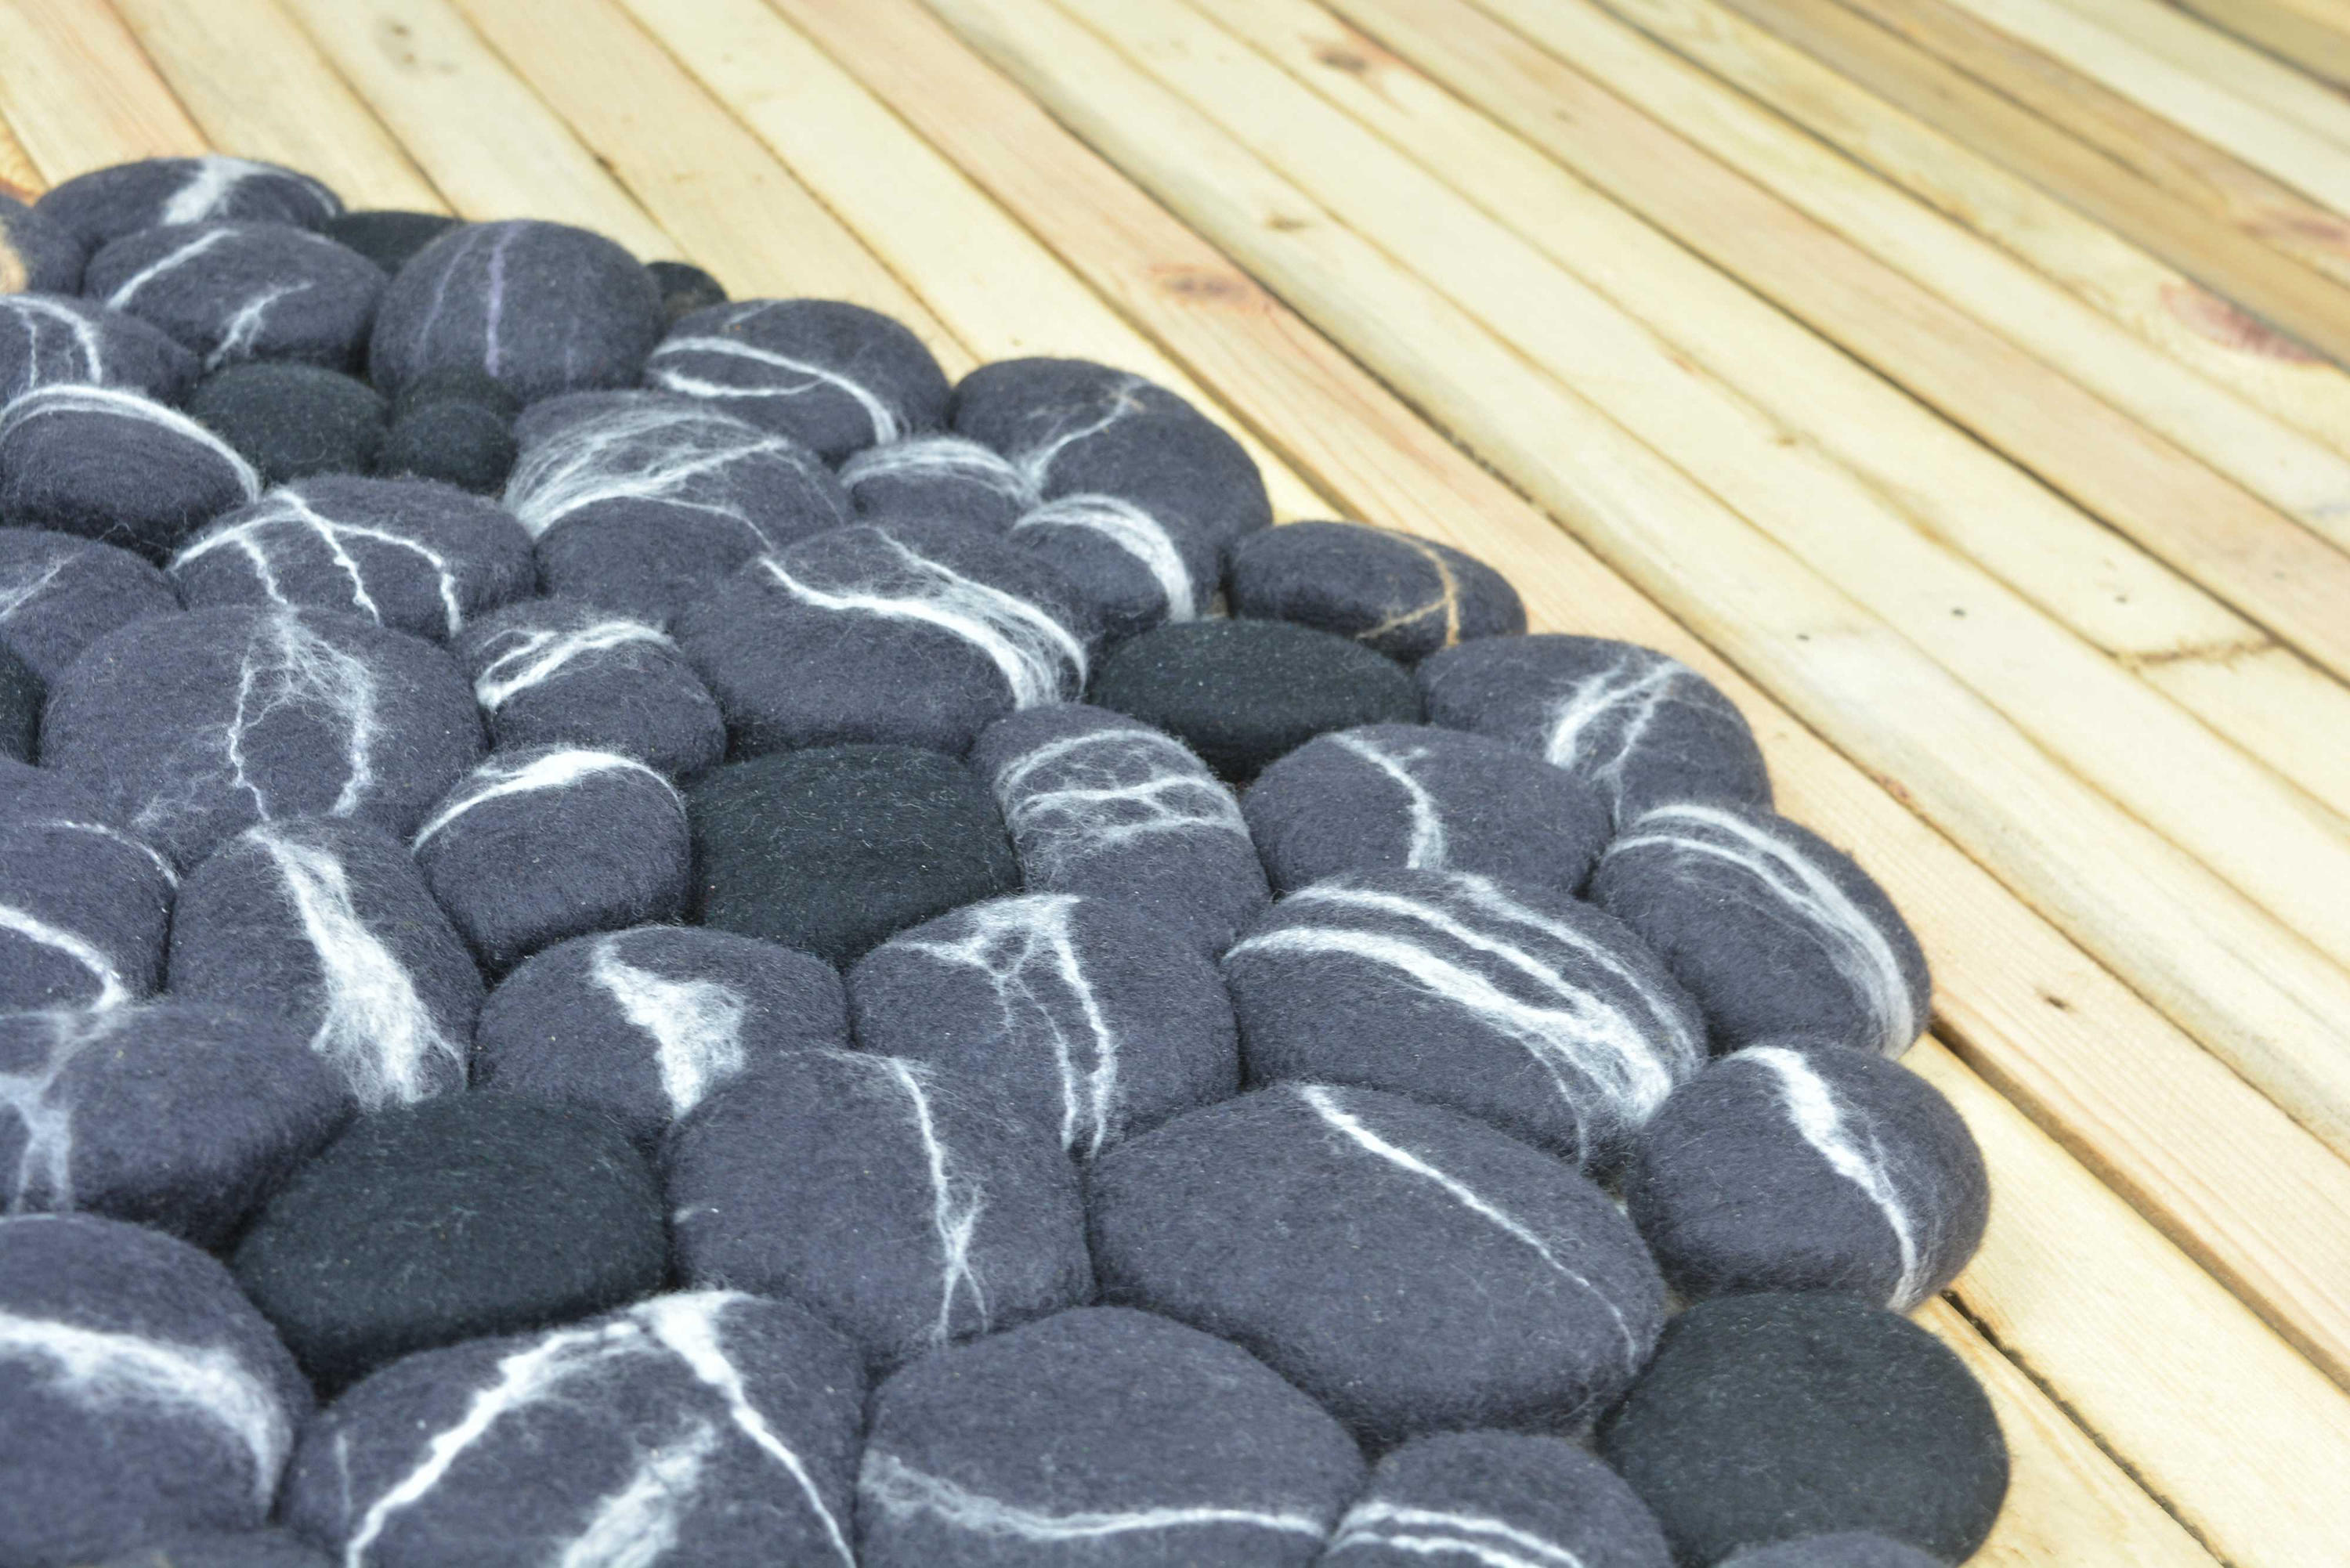 Close-up of a felt stone rug.